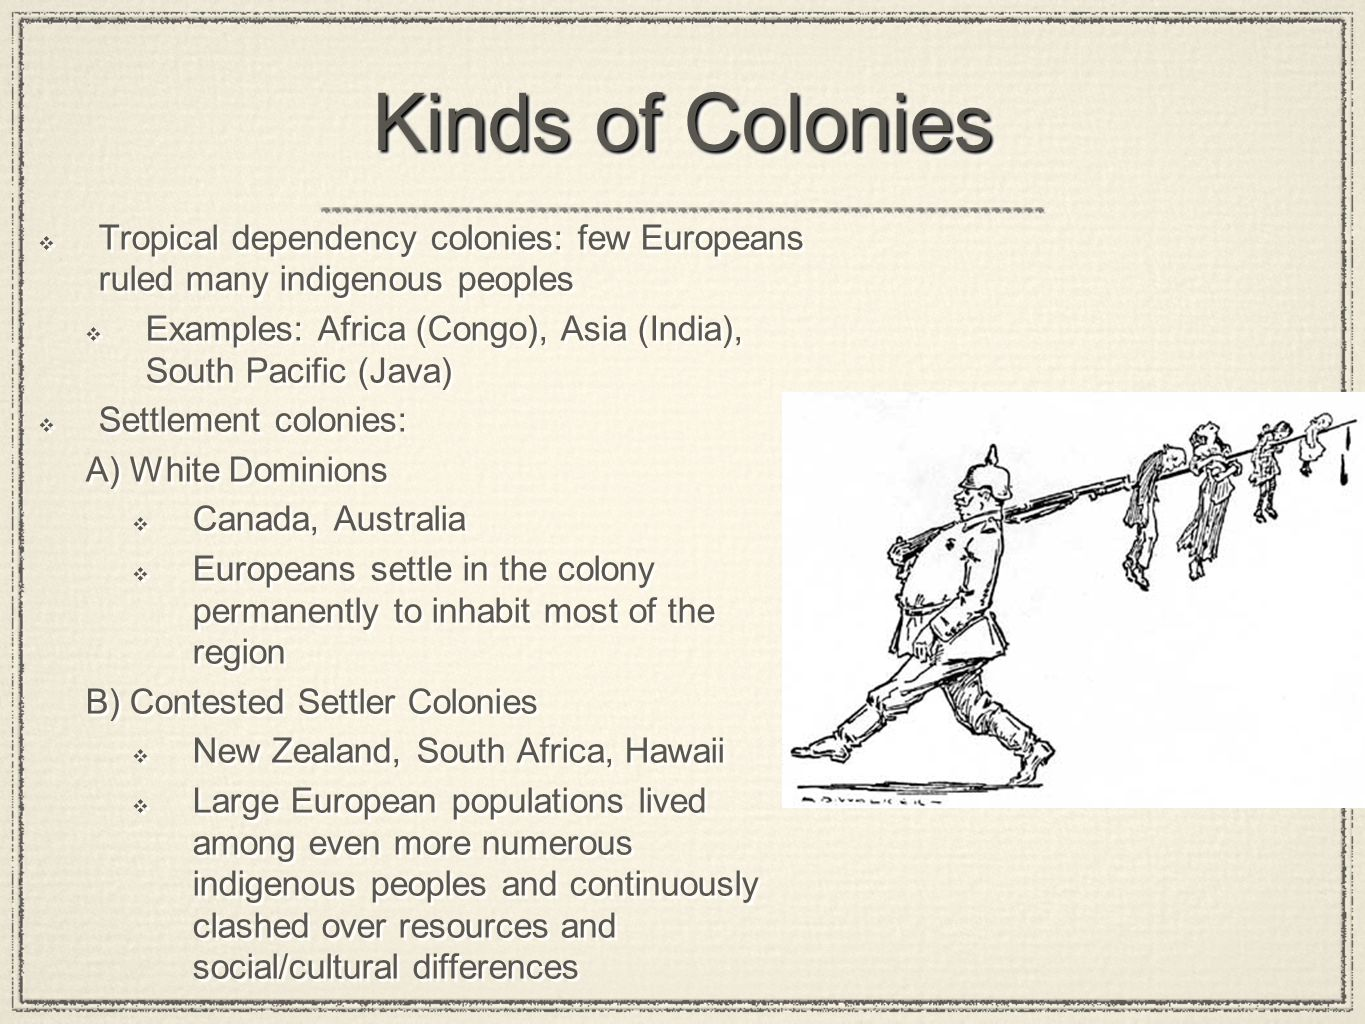 Kinds of Colonies Tropical dependency colonies: few Europeans ruled many indigenous peoples.